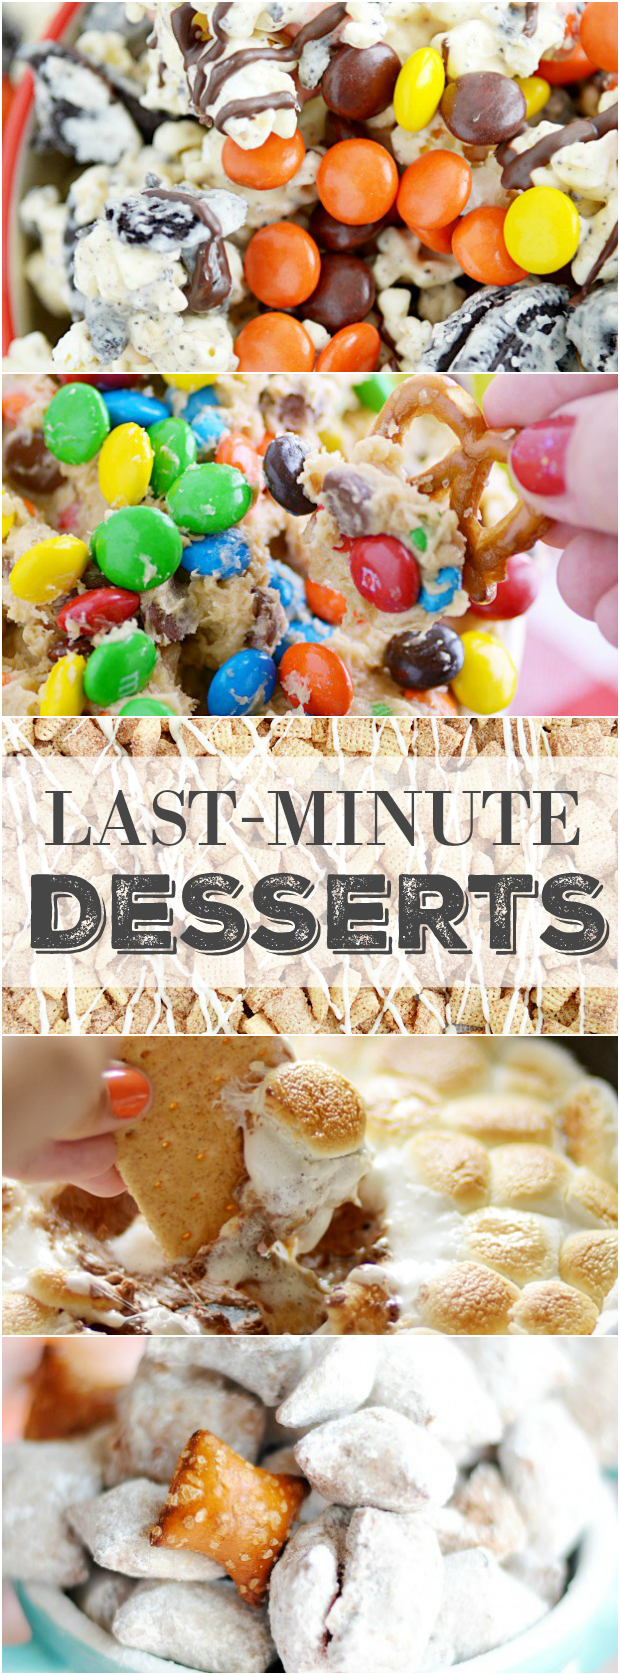 My Top 5 Favorite Desserts you can make in 10 minutes or less. Perfect recipes for parties!